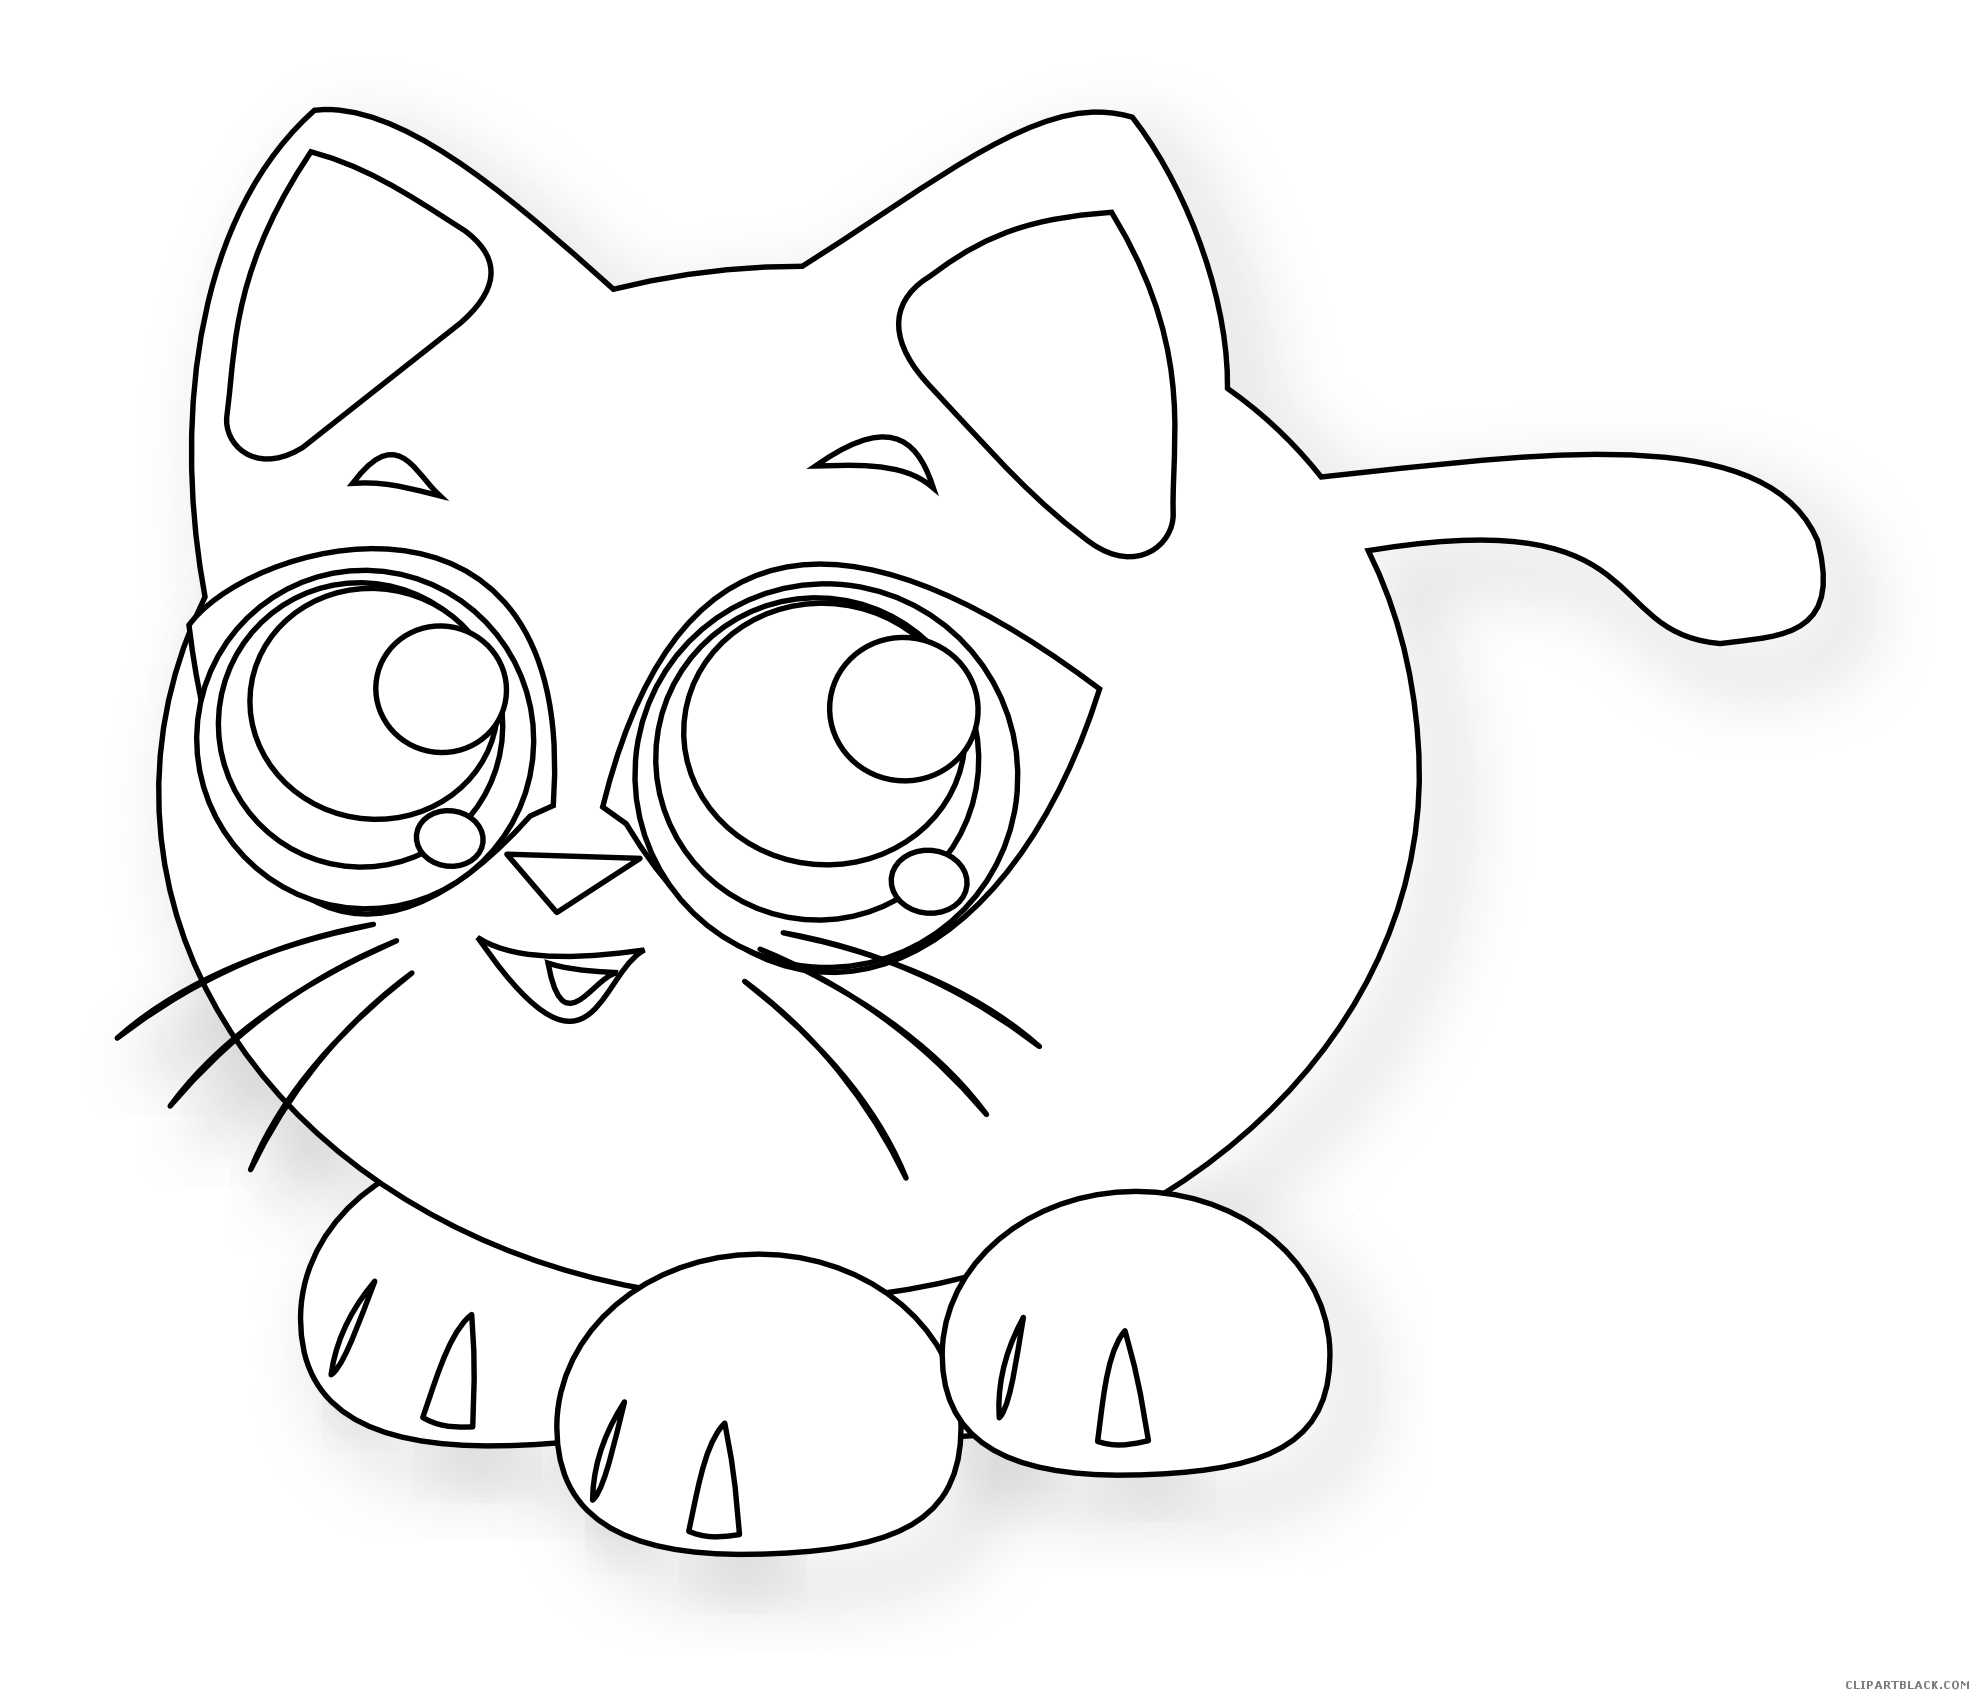 Pete the cat black and white clipart graphic black and white Cat - Page 39 of 95 - ClipartBlack.com graphic black and white